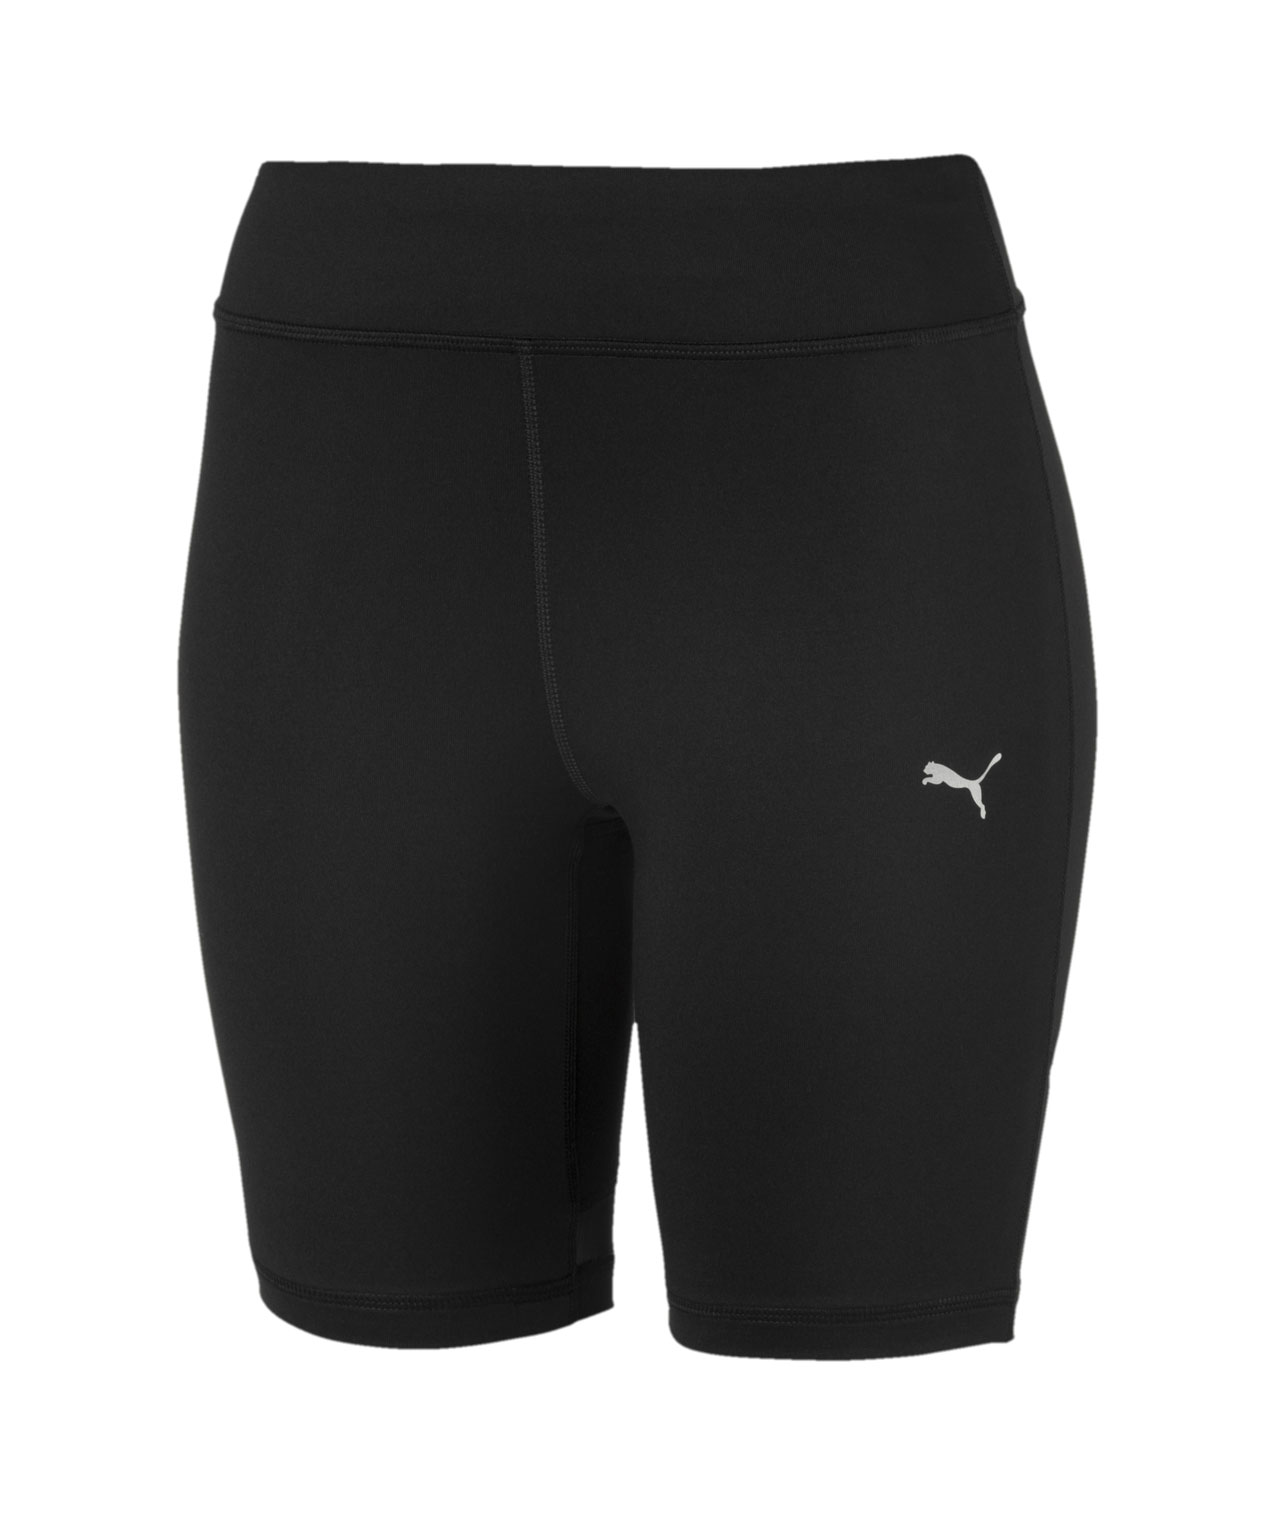 "Puma 7"" Short Tight"